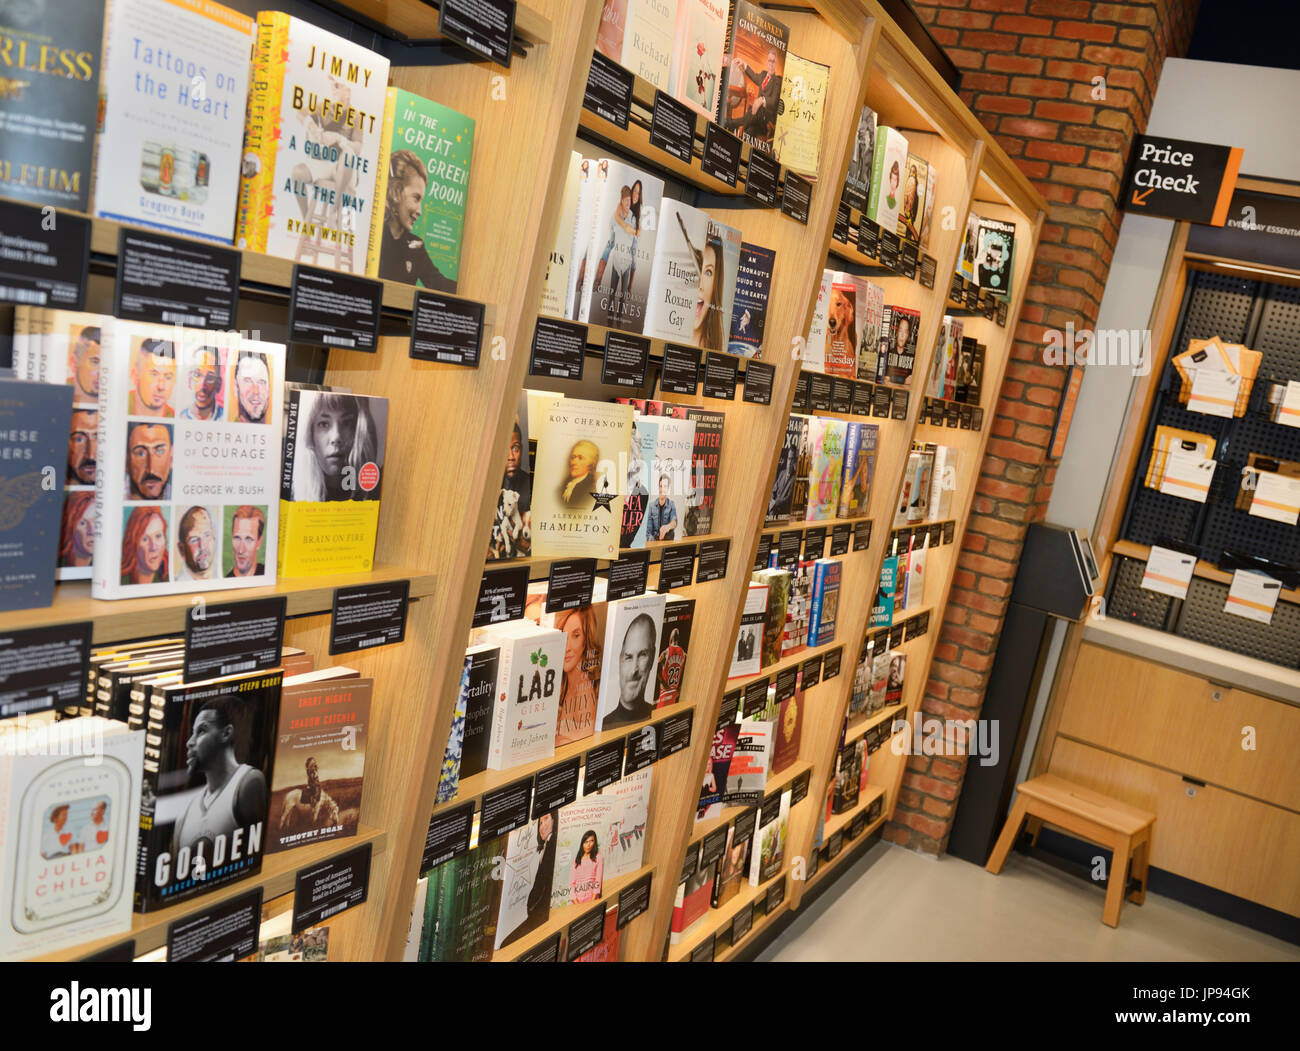 Rows of books in an Amazon Books retail store with a screen to scan for a price check - Stock Image